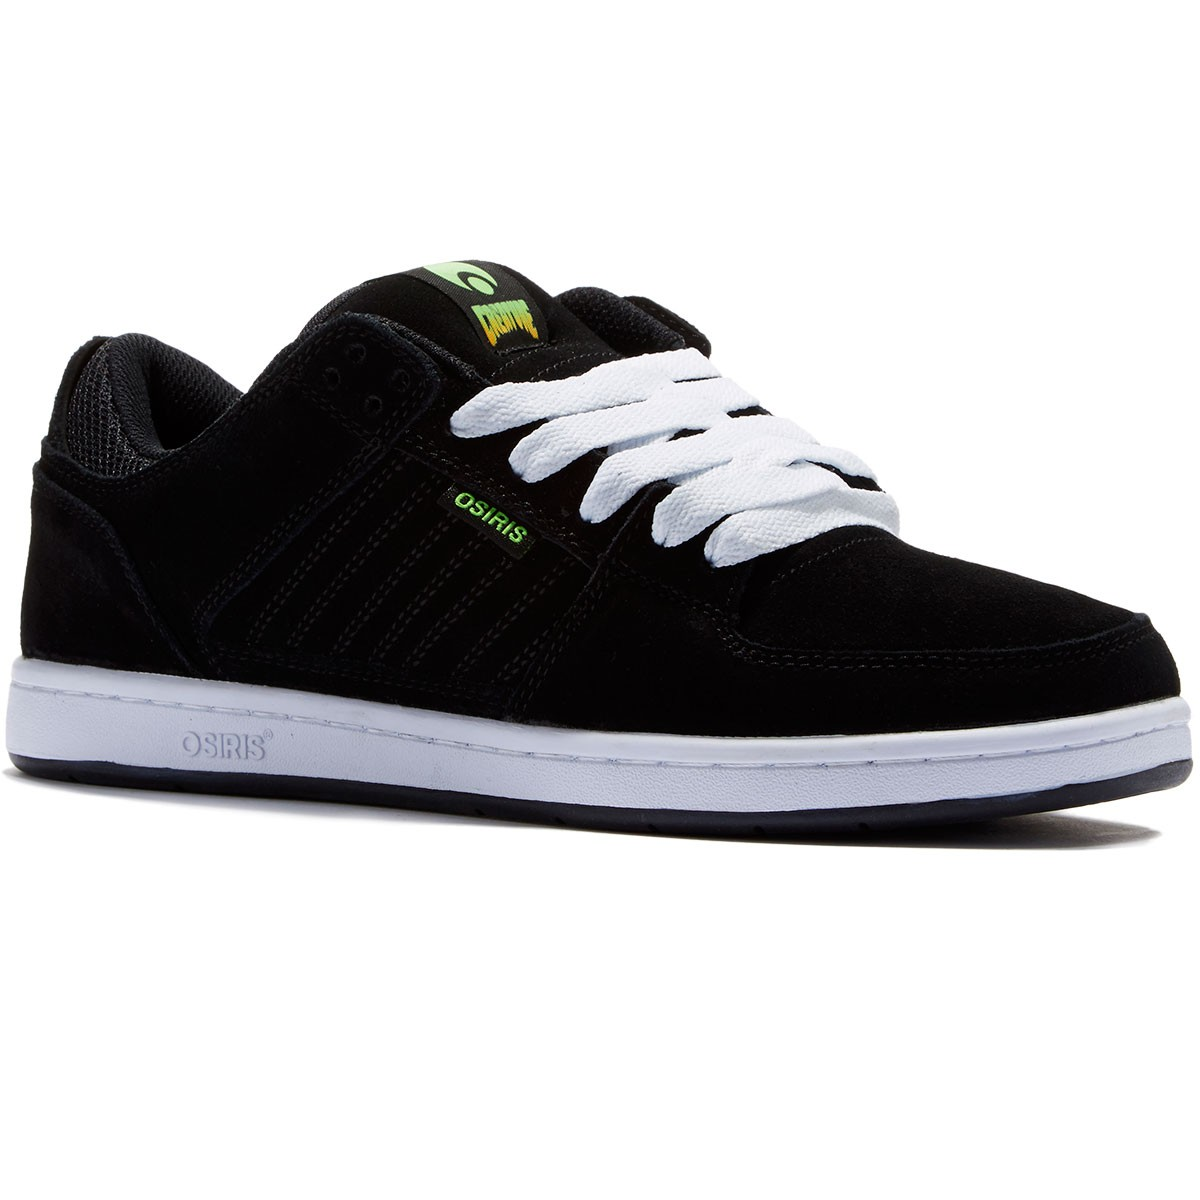 Osiris Protocol SLK Shoes - Graham/Creature - 8.5